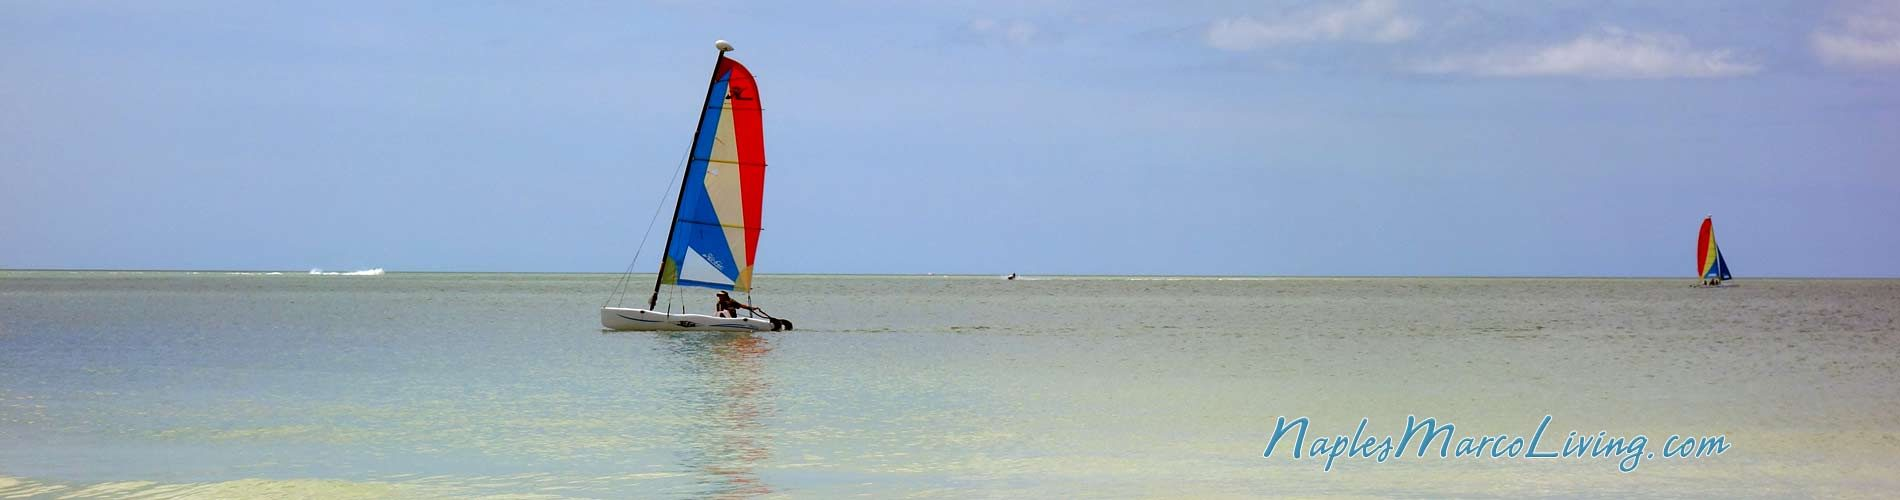 Ocean Sailing Sailboats in the Gulf of Mexico Naples Florida